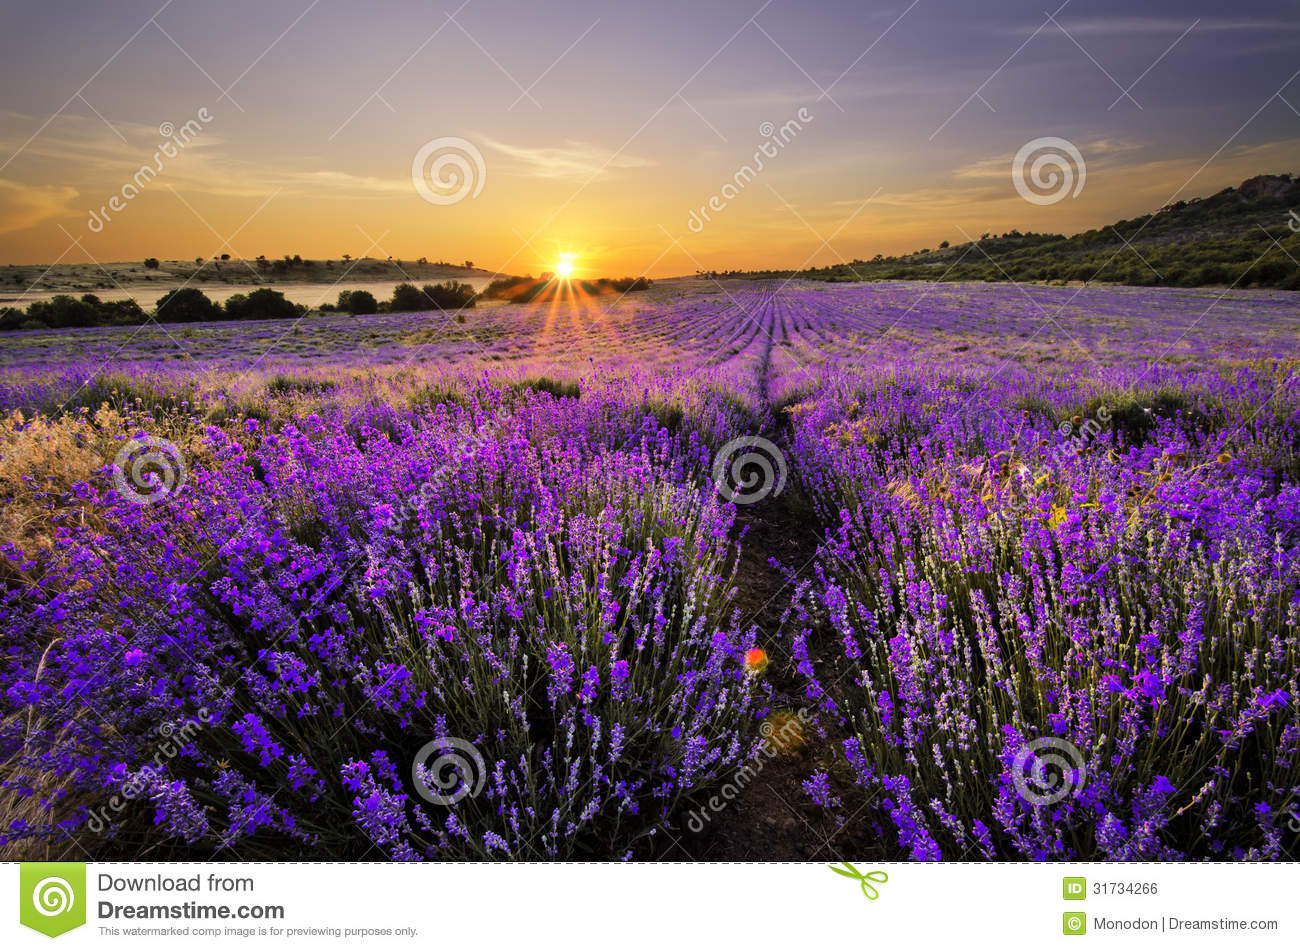 Fall Harvest Wallpaper Sunset Over Lavender Field Royalty Free Stock Image